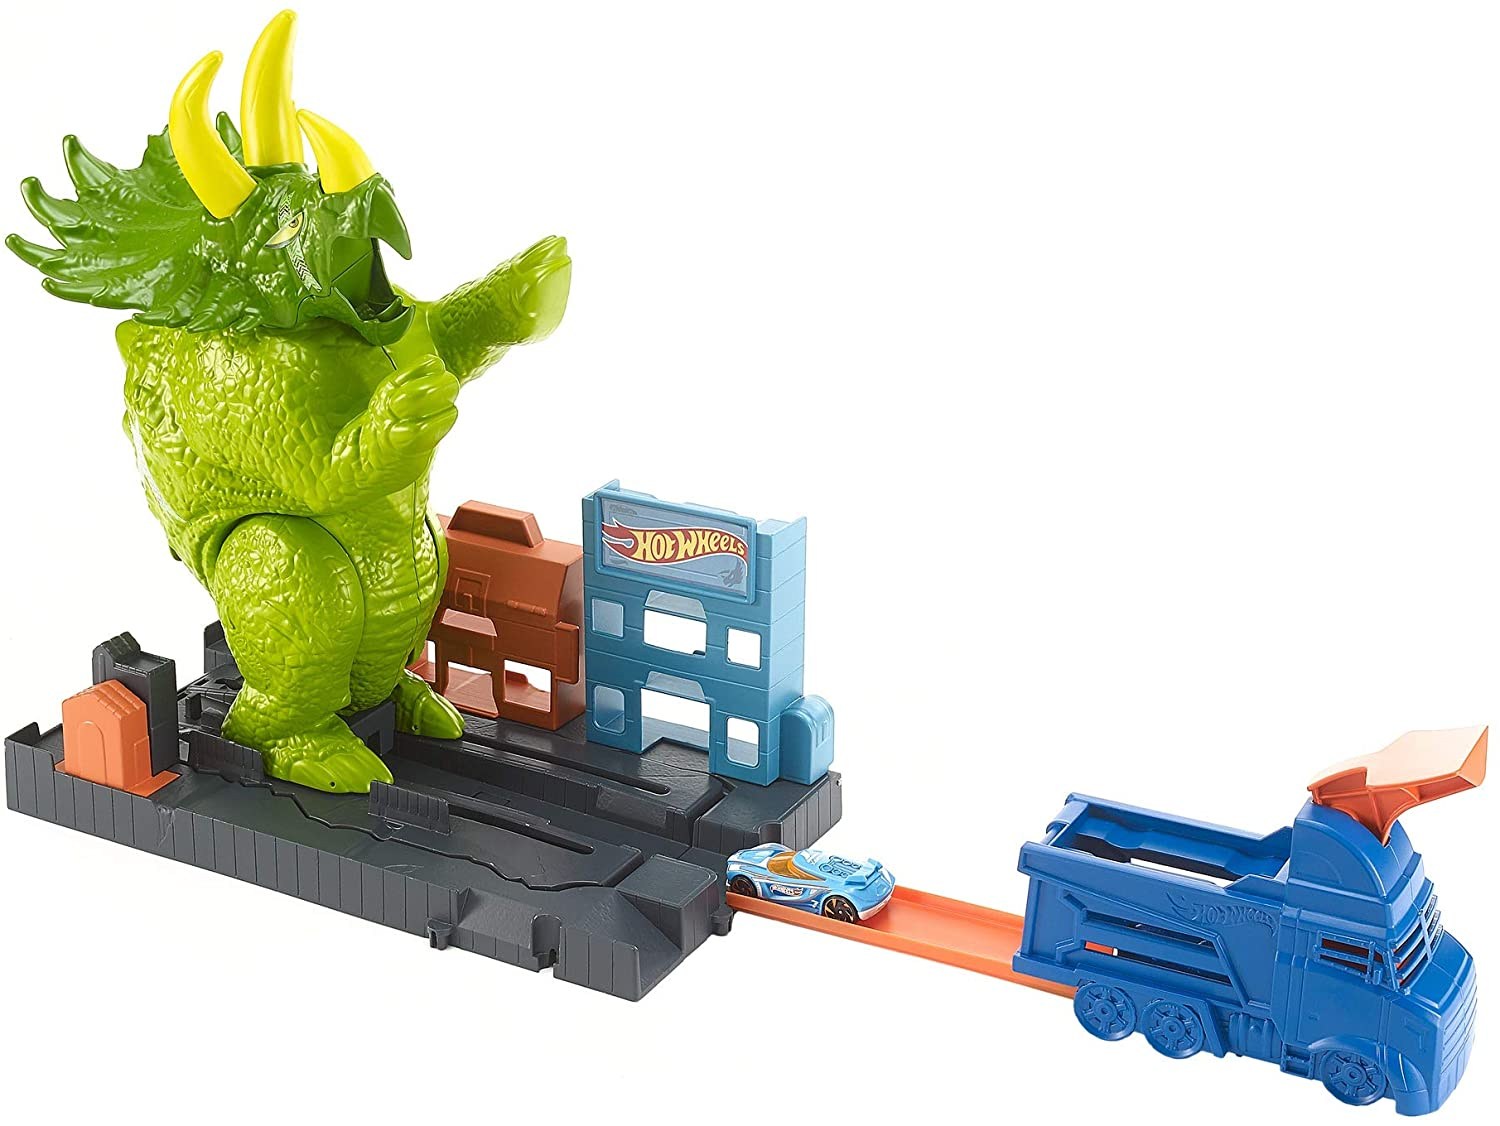 Hot Wheels -  Ataque de Triceratops